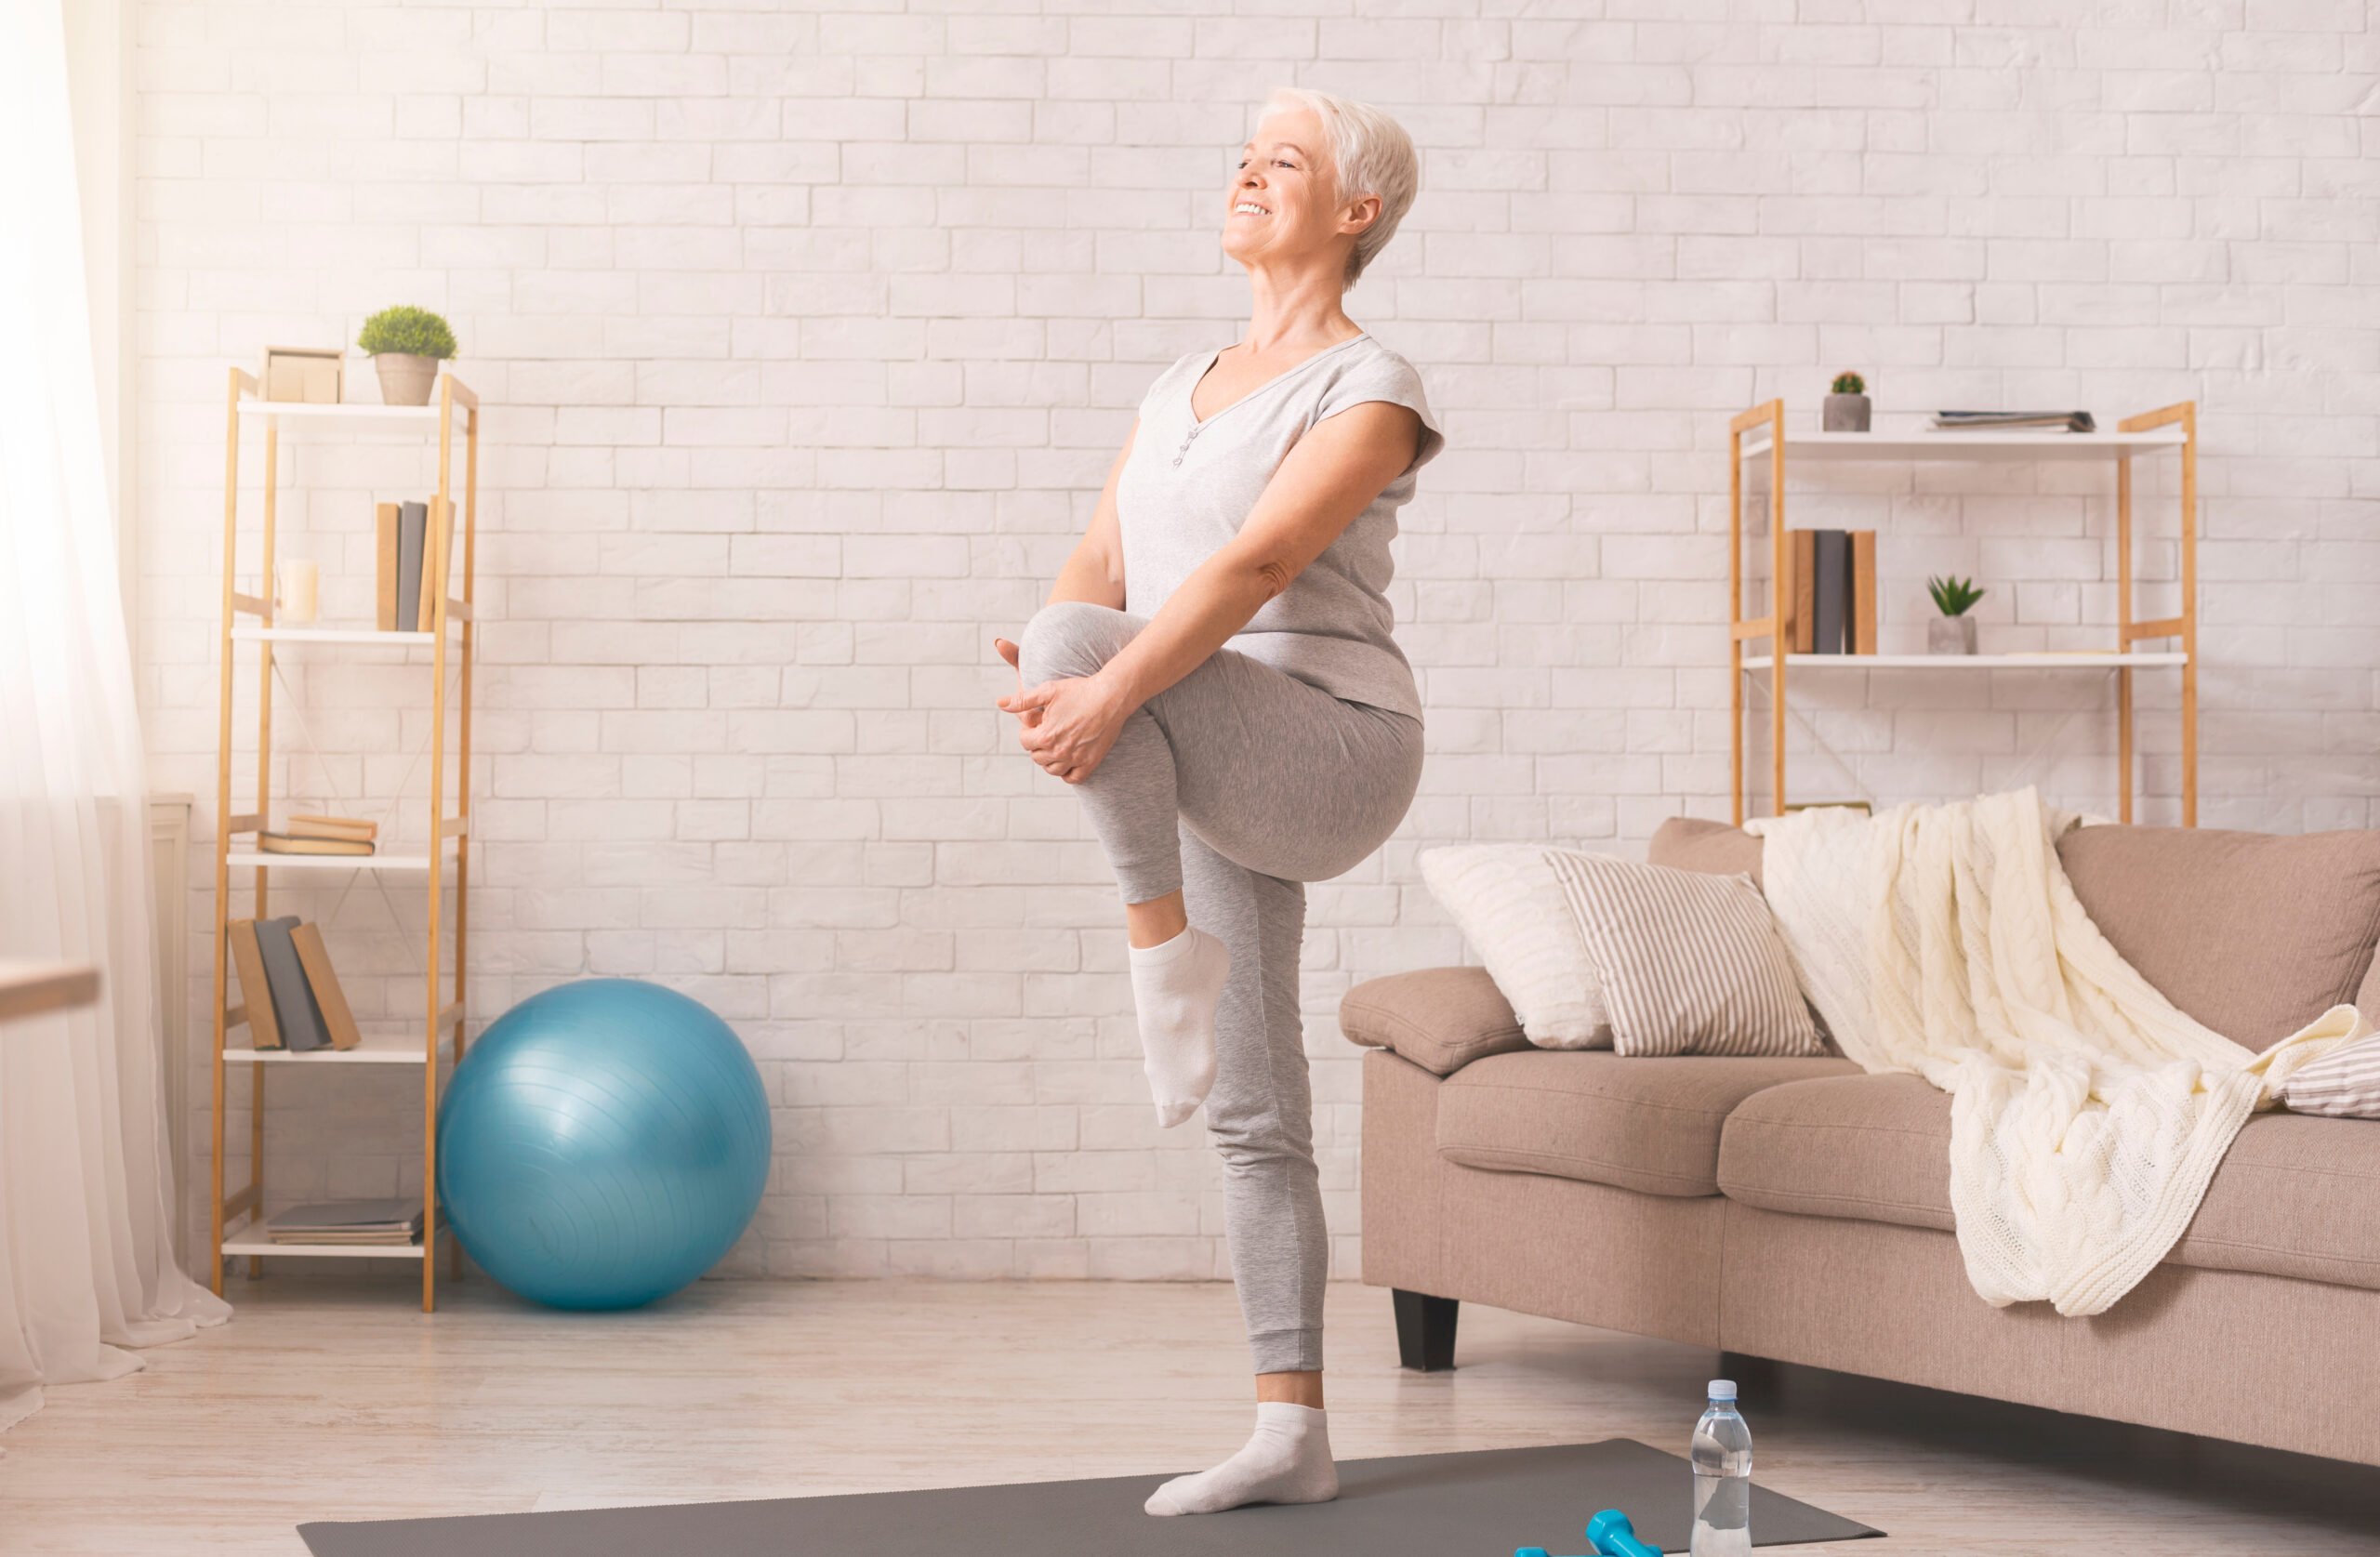 Improving balance for fall prevention